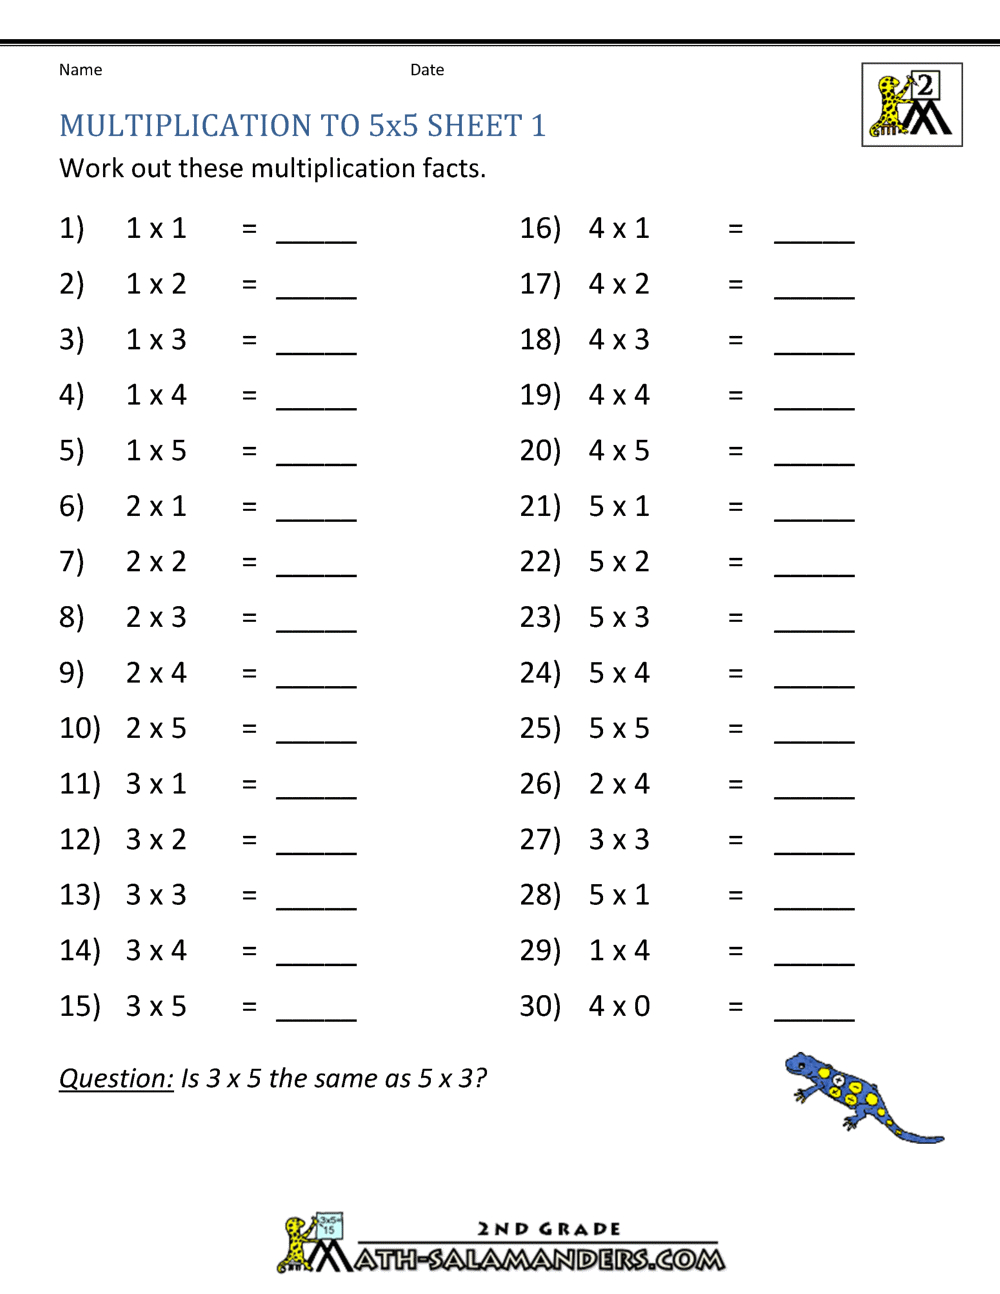 May8Forstudents Page 23: Printable Numbers 1-10 Flashcards